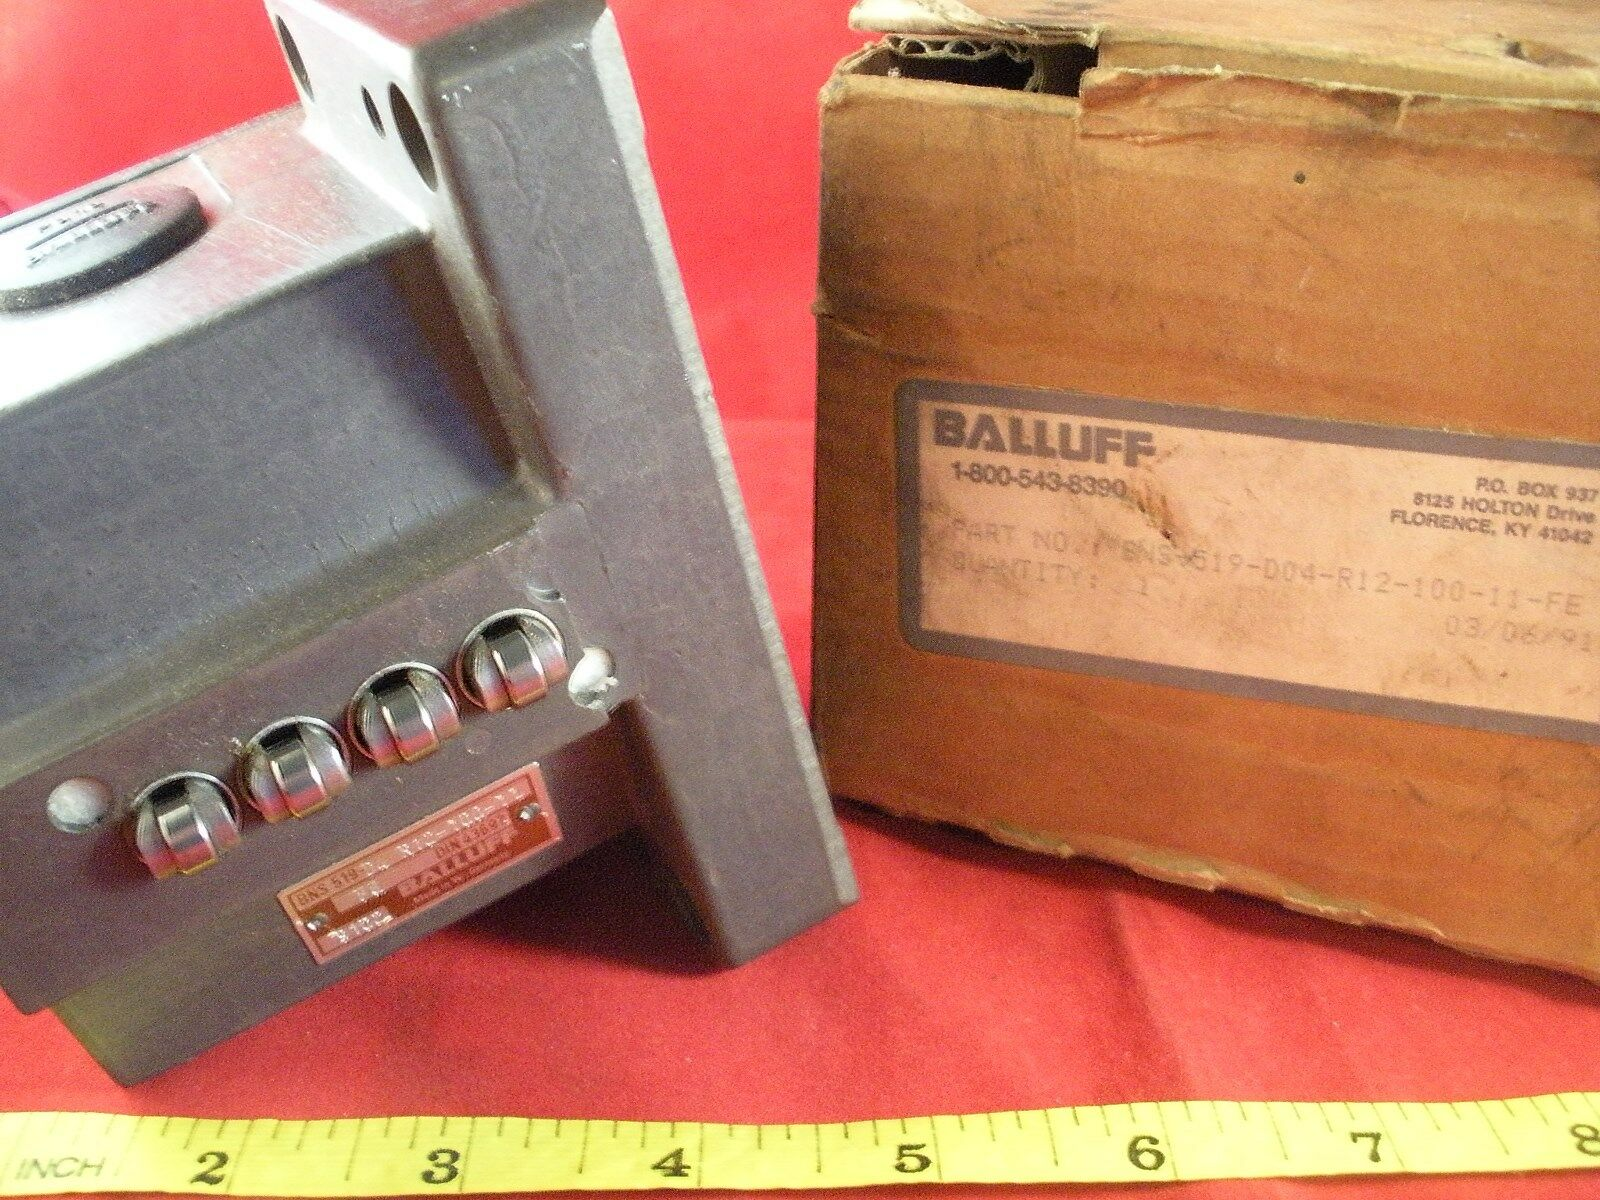 Balluff BNS-519-D04-R12-100-11-FE Proximity Limit Switch BNS-519-D4 4 pin New